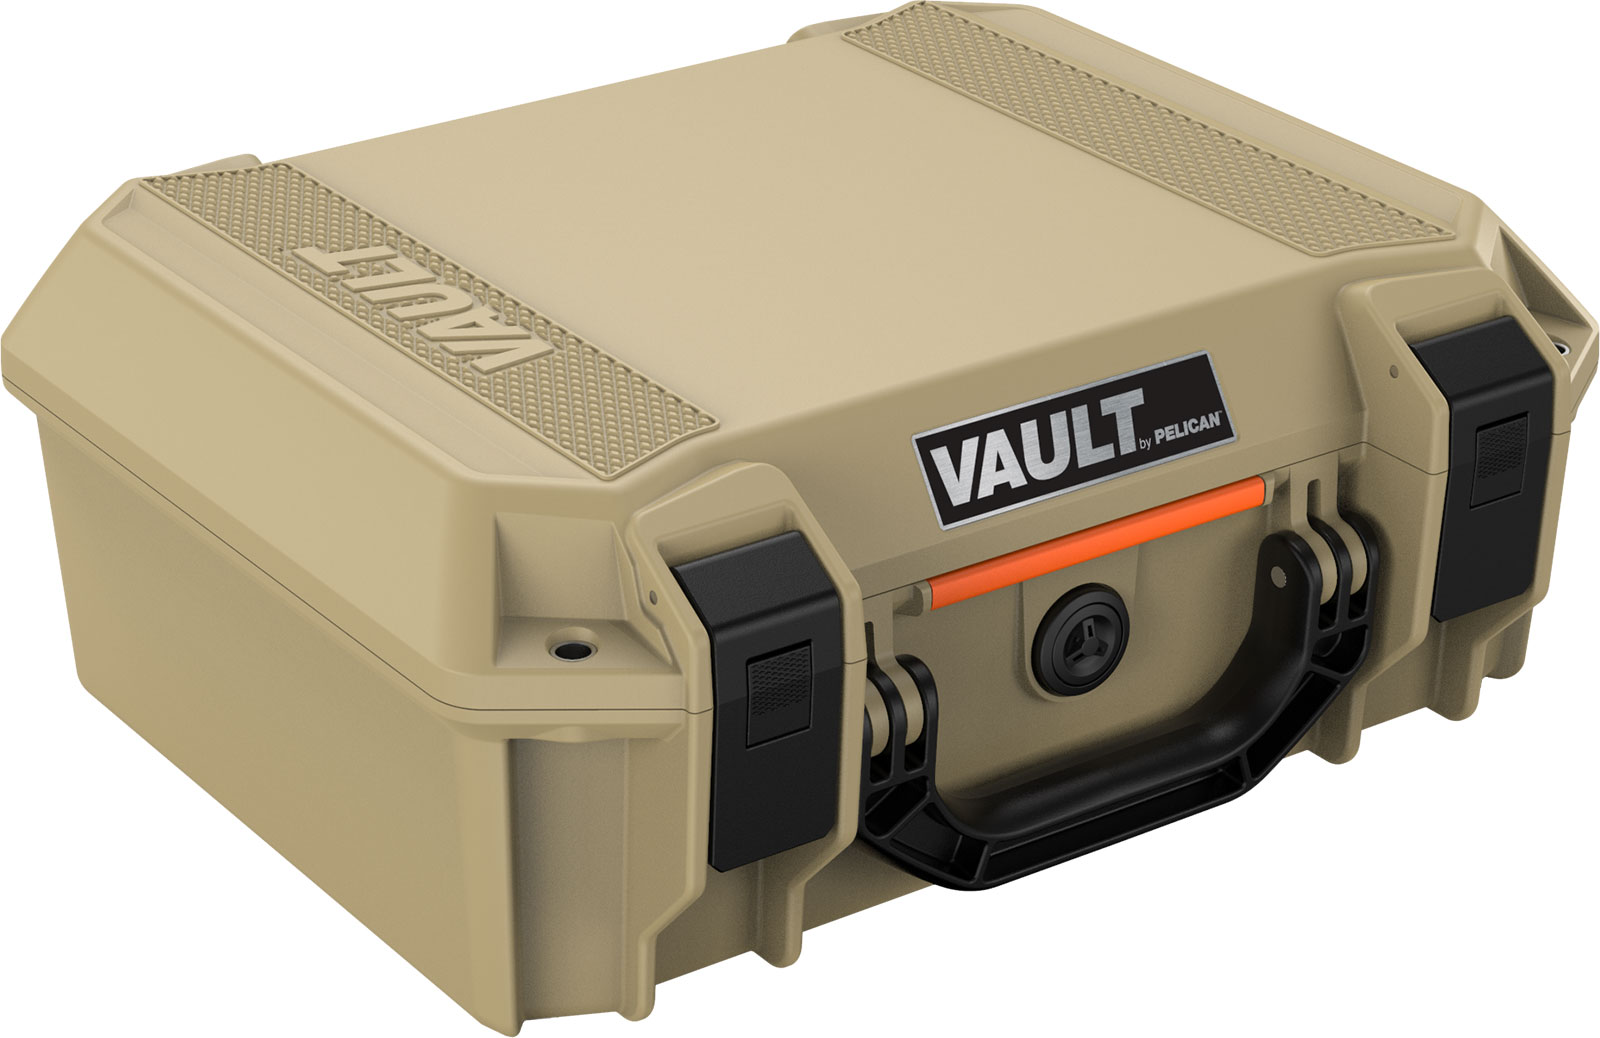 pelcian vault v200 tan equipment case